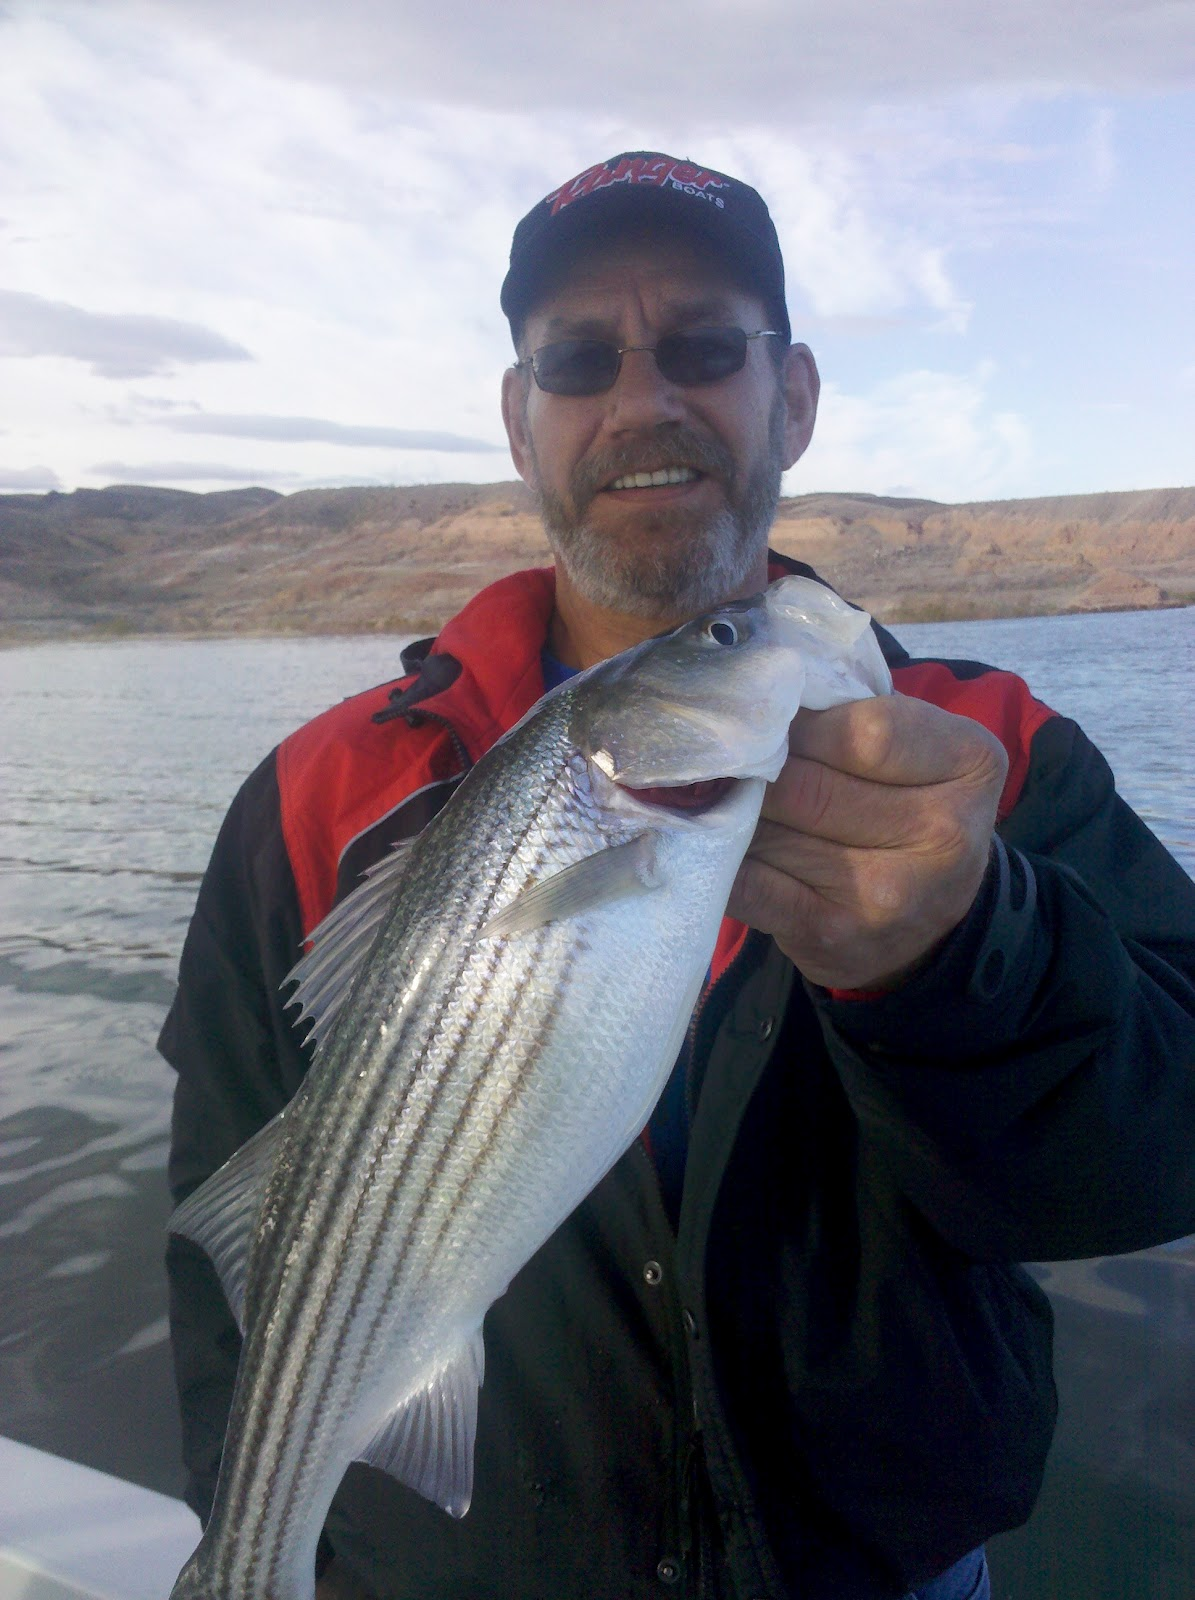 Illinois wisconsin fishing a vacation fishing destination for Lake mead fishing guides